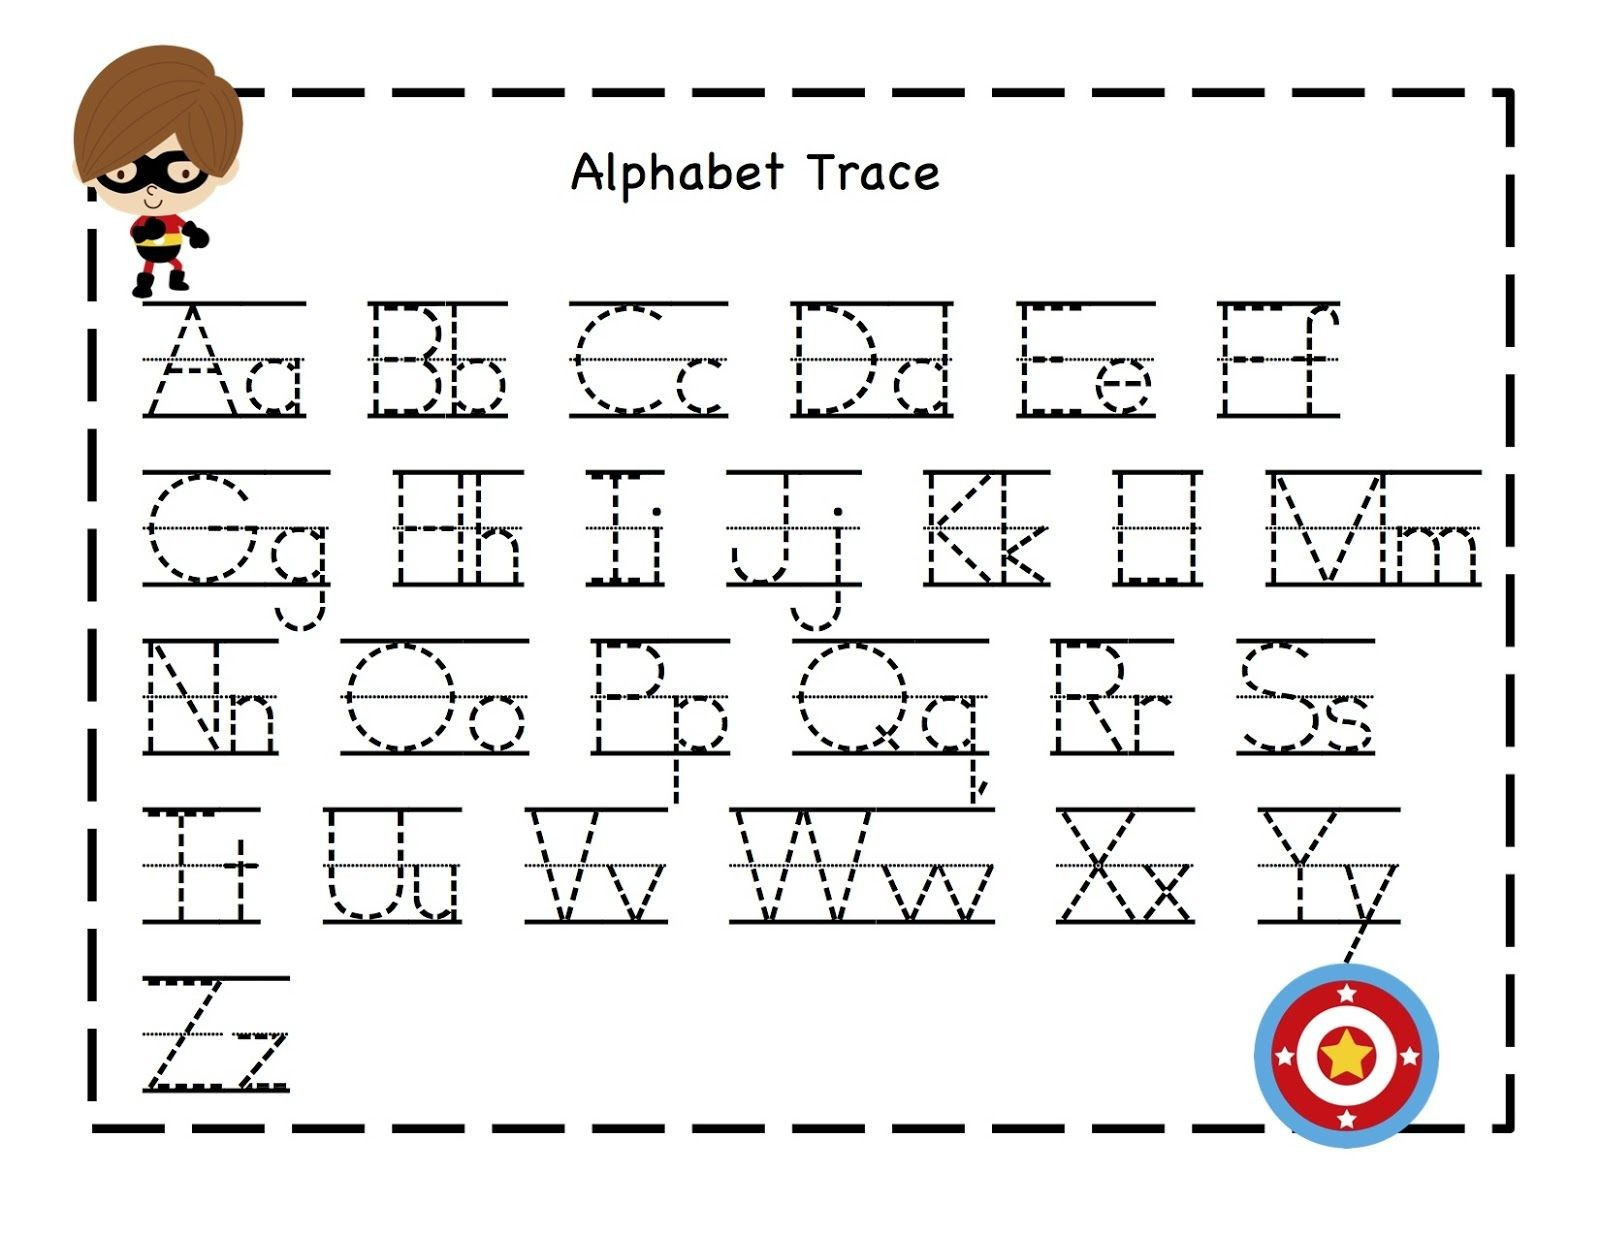 Free Printable Preschool Worksheets Tracing Letters – Worksheet Template - Free Printable Preschool Worksheets Tracing Letters